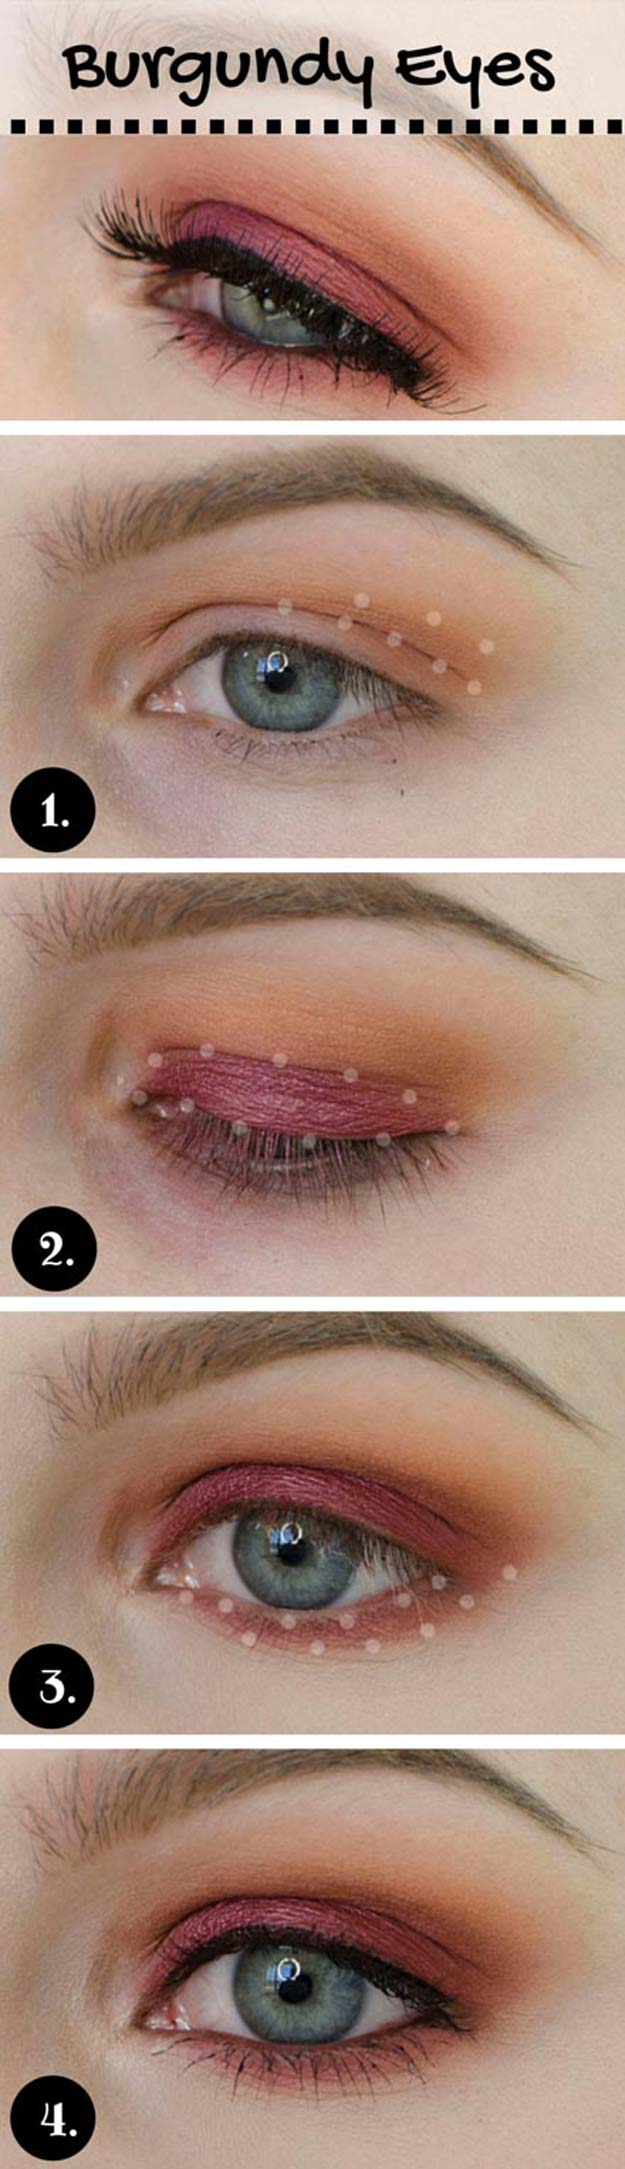 Best Eyeshadow Tutorials - Burgundy Make-up Look - Easy Step by Step How To For Eye Shadow - Cool Makeup Tricks and Eye Makeup Tutorial With Instructions - Quick Ways to Do Smoky Eye, Natural Makeup, Looks for Day and Evening, Brown and Blue Eyes - Cool Ideas for Beginners and Teens http://diyprojectsforteens.com/best-eyeshadow-tutorials